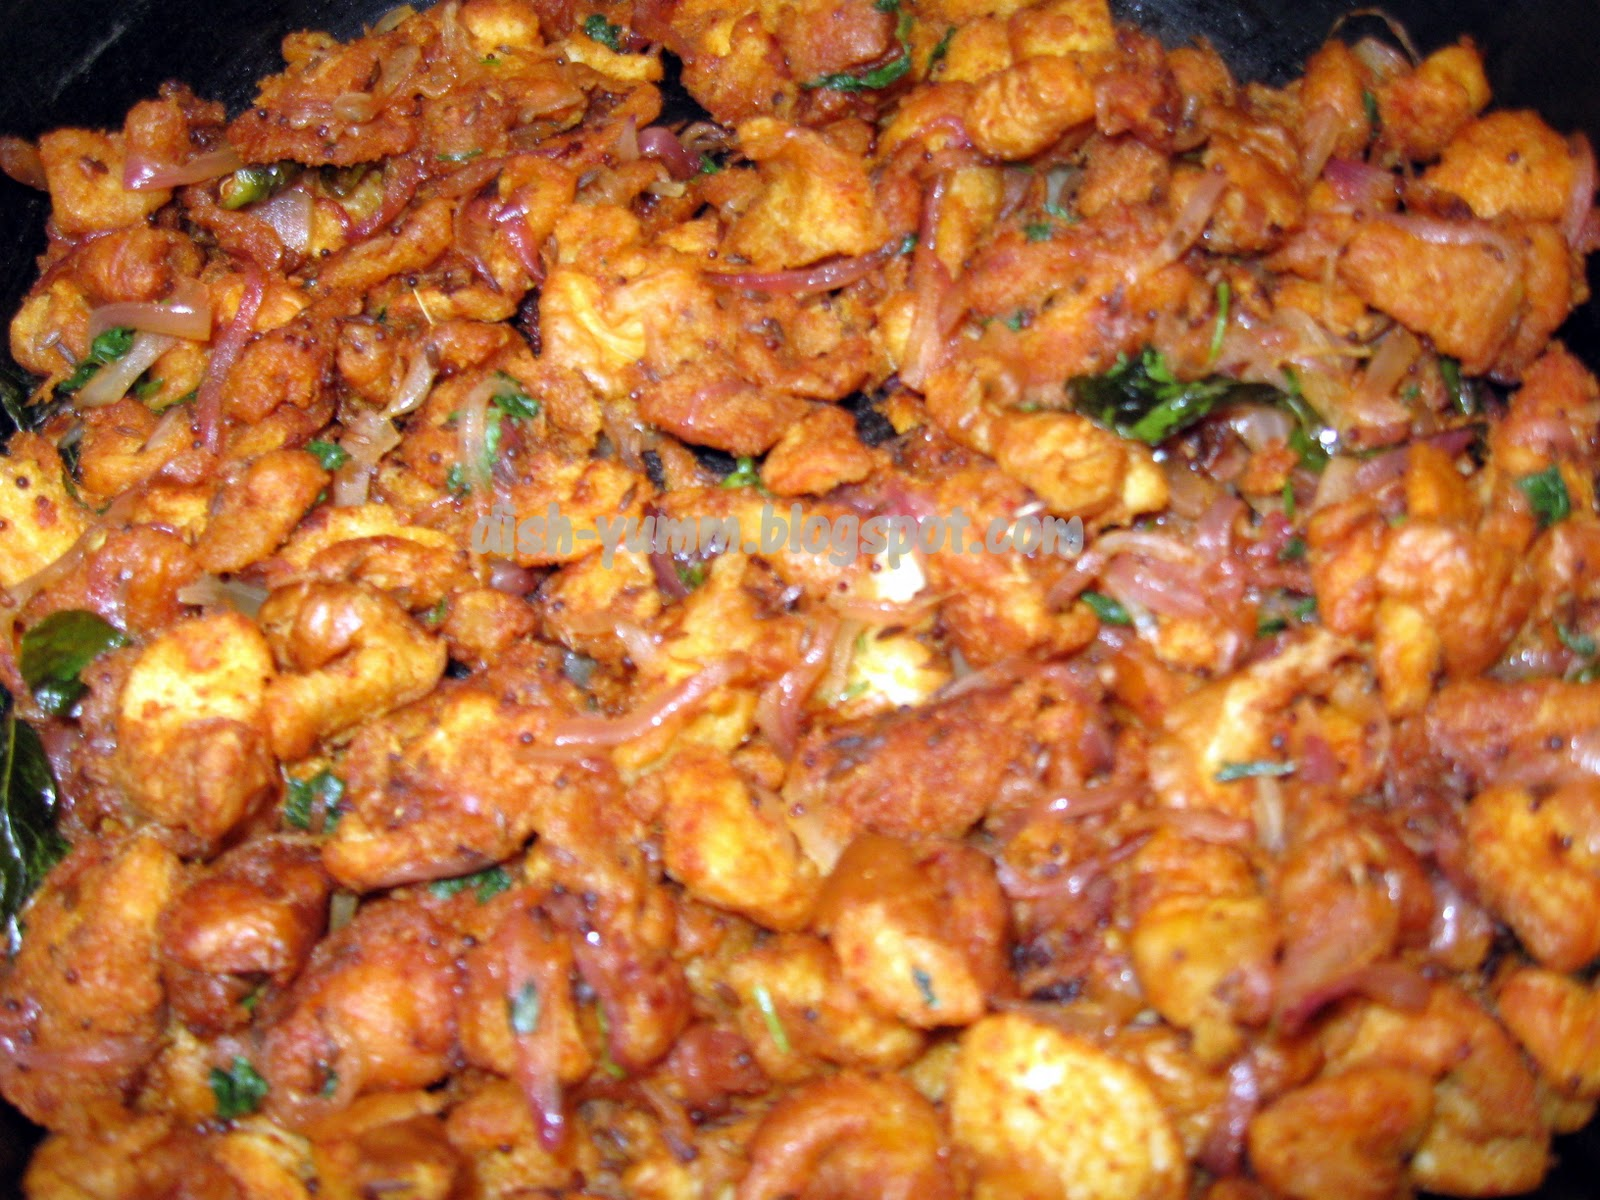 Dish yumm bread 65spiced indian sytle bread snack we all have come across different recipes for bread upma and other leftover bread dishes i now have a slightly altered and a fanciful recipe for a spicy forumfinder Choice Image